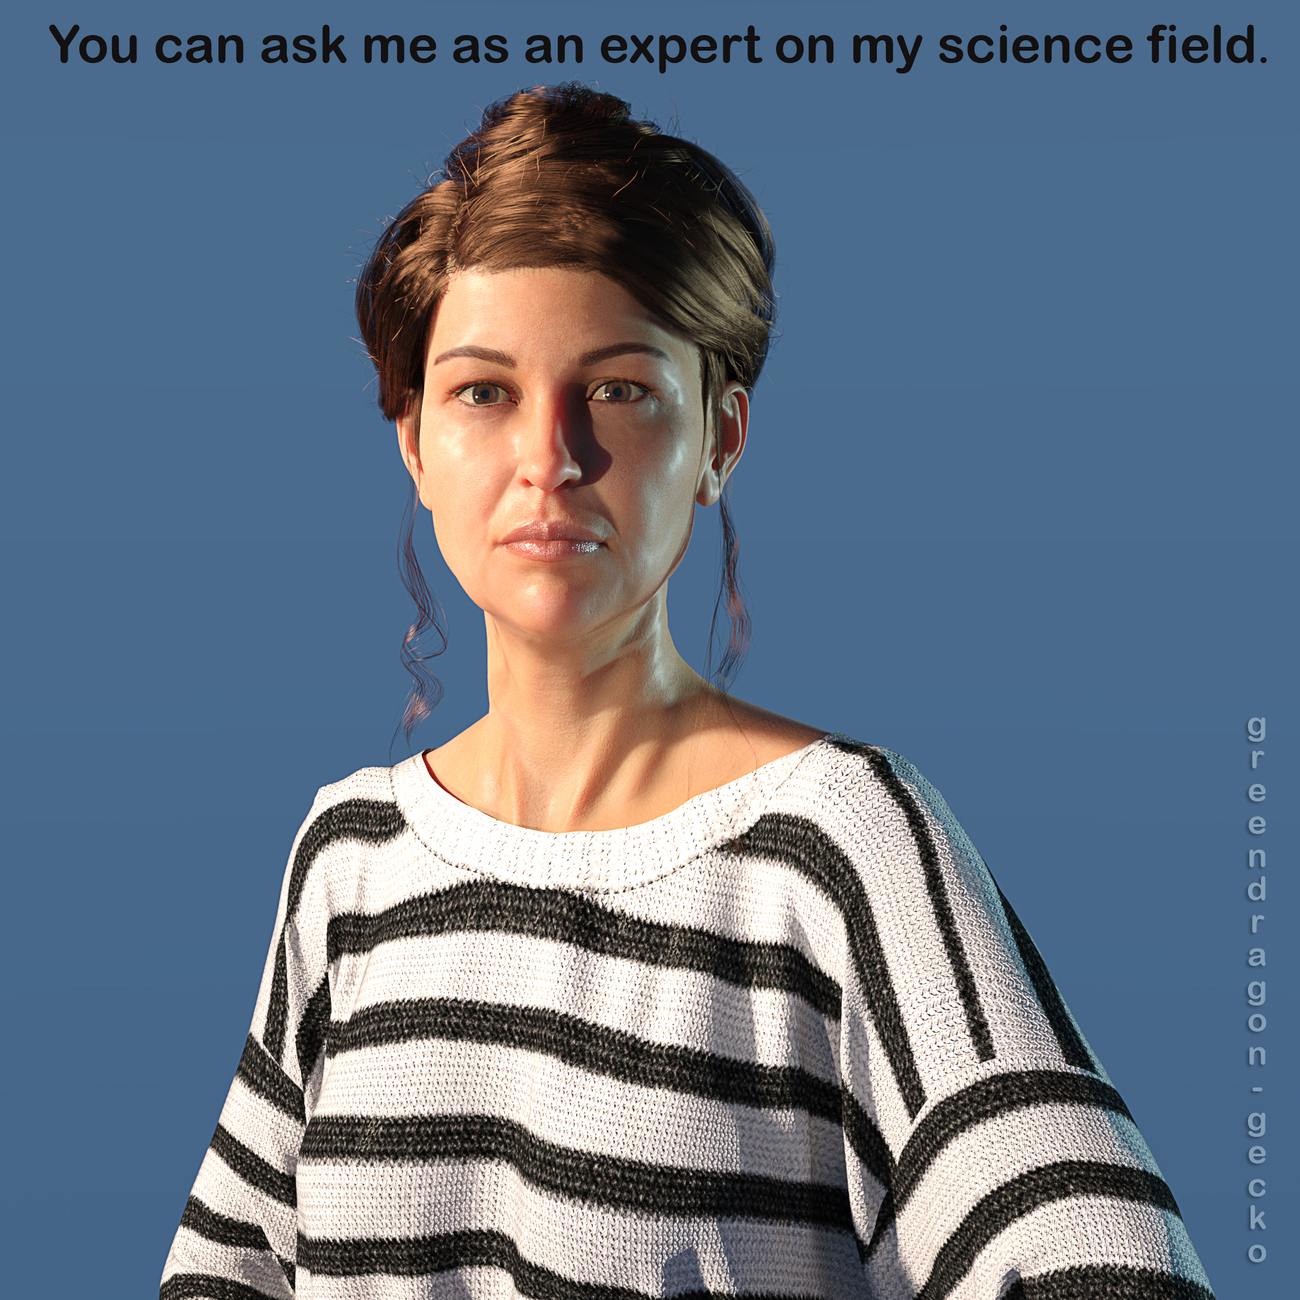 female science expert by Salerina